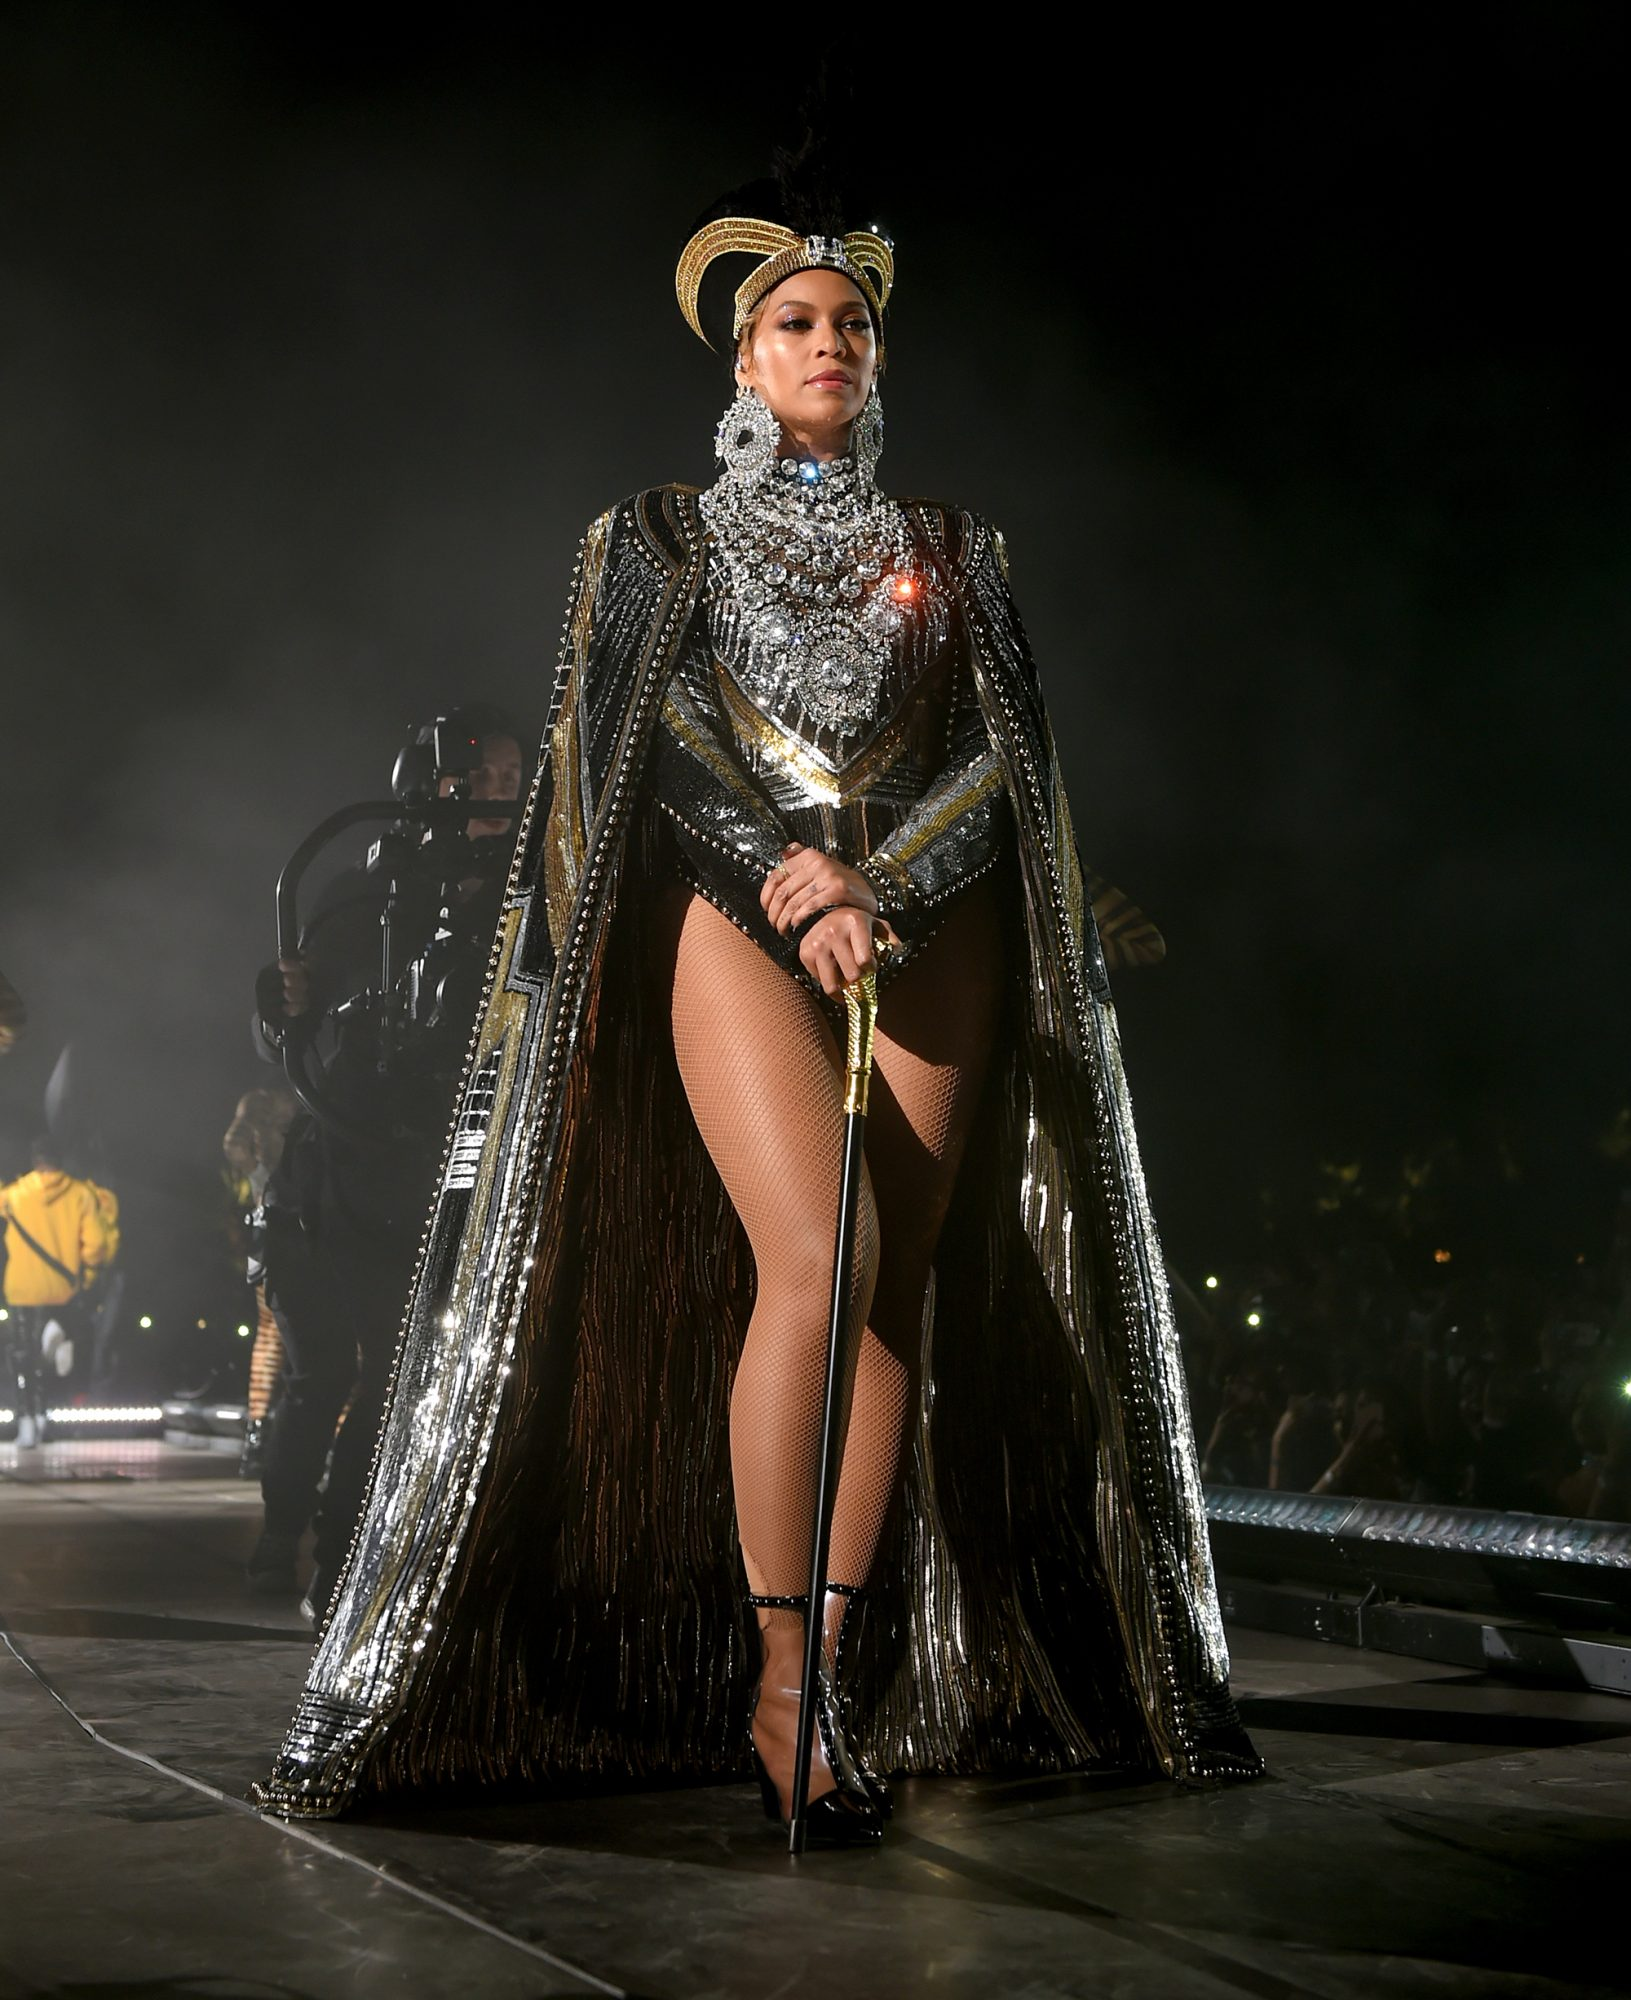 You Can't Watch Beyoncé's Coachella Performance—Here's Why